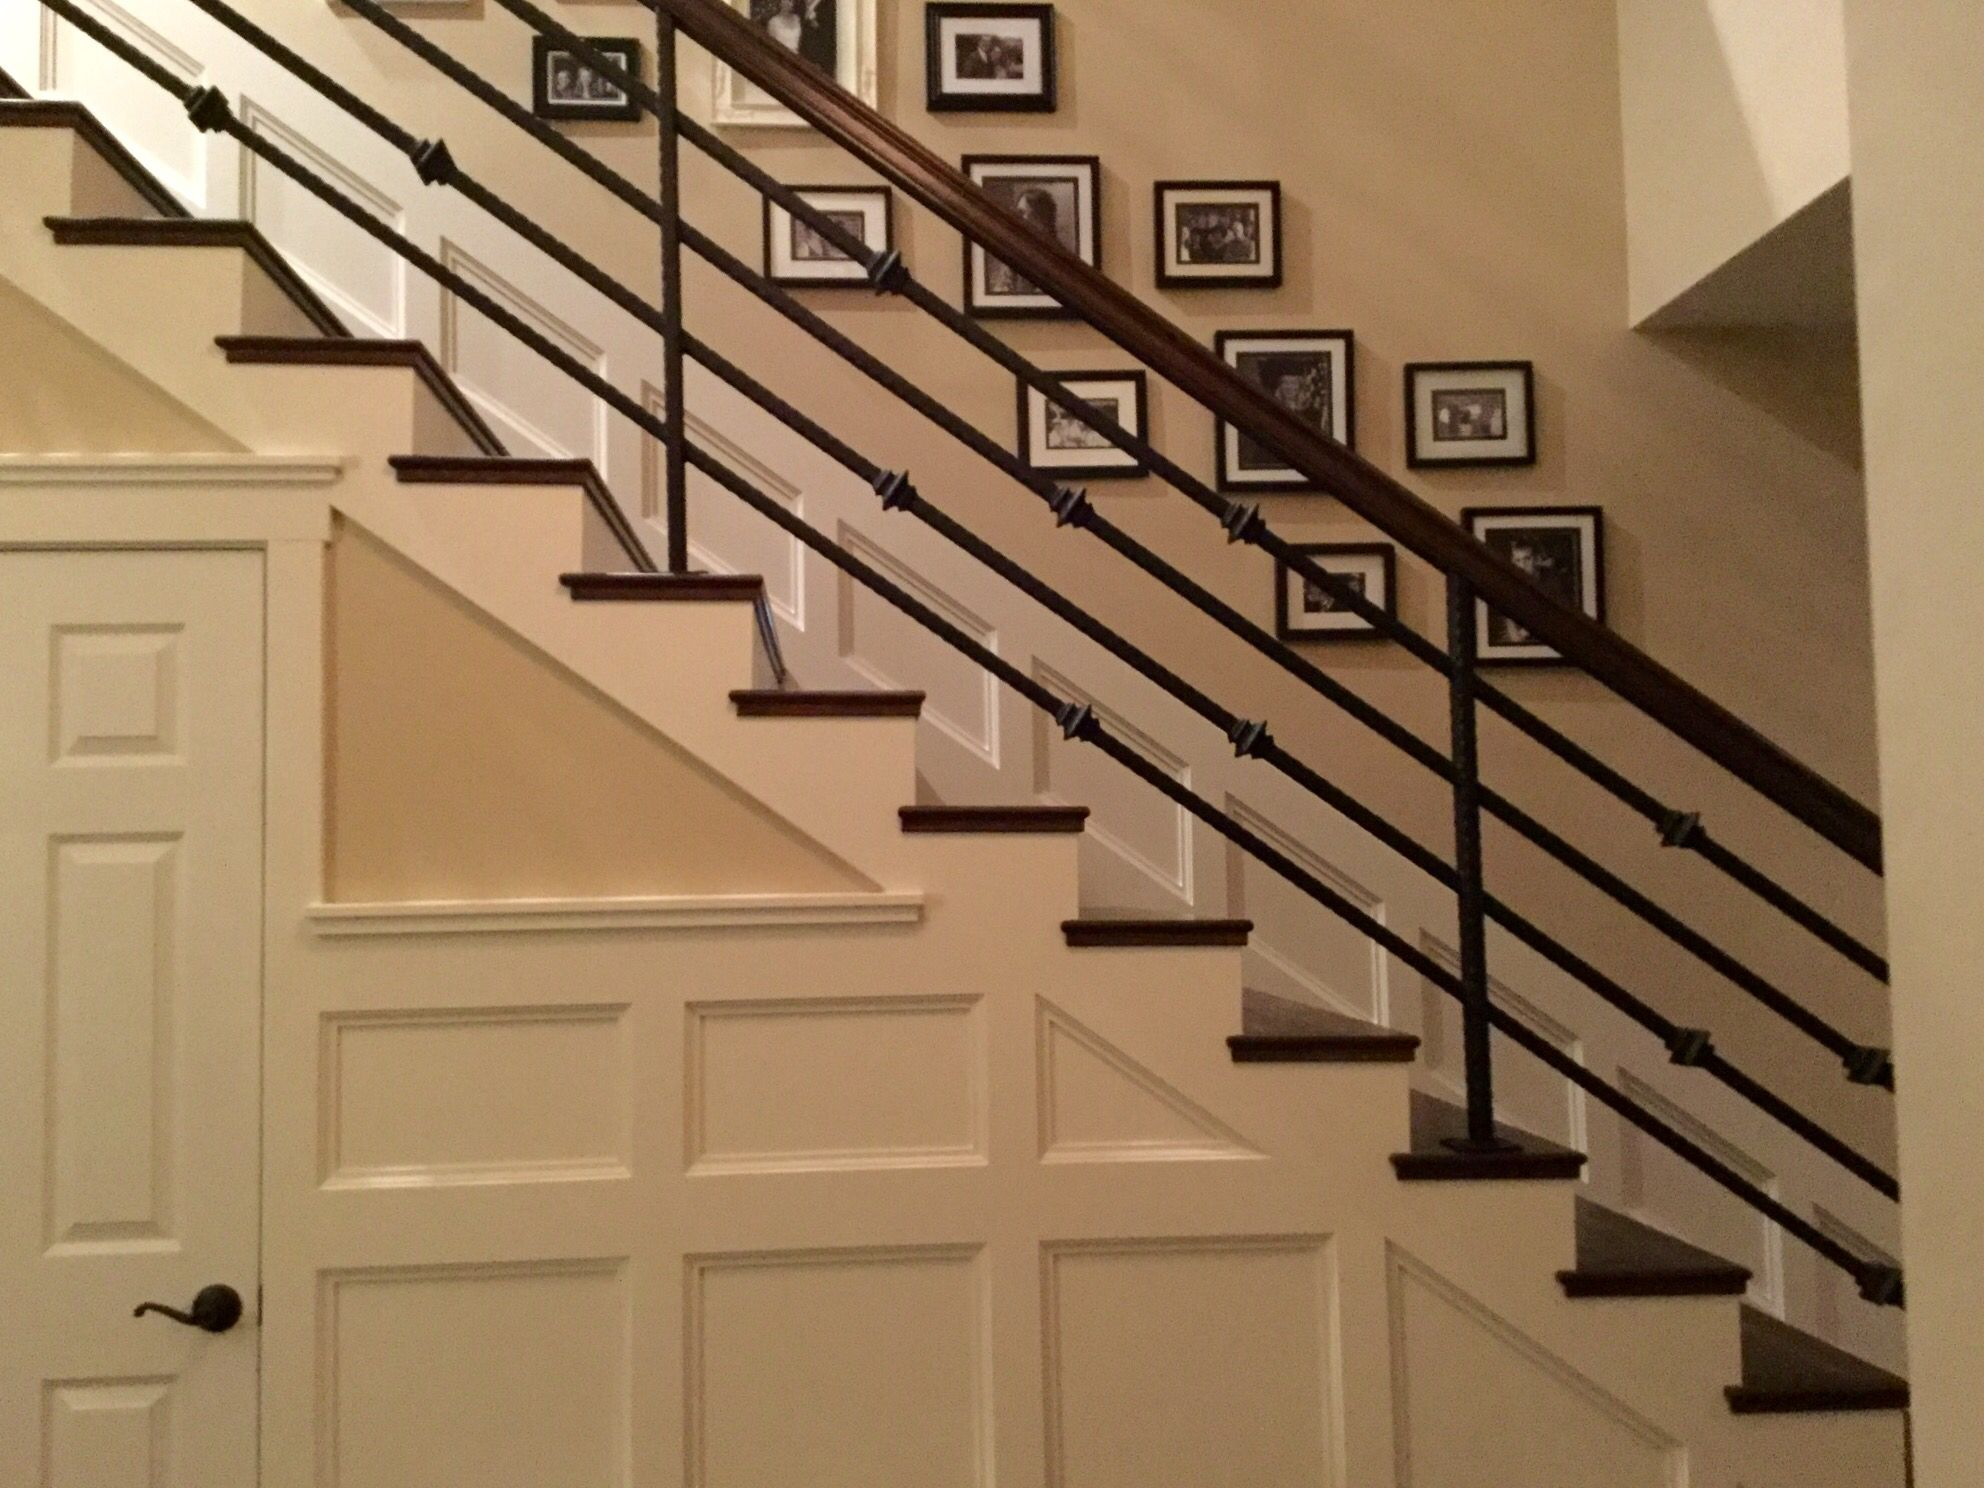 Added The Board And Batten Wainscoting Plus The Custom Horizontal